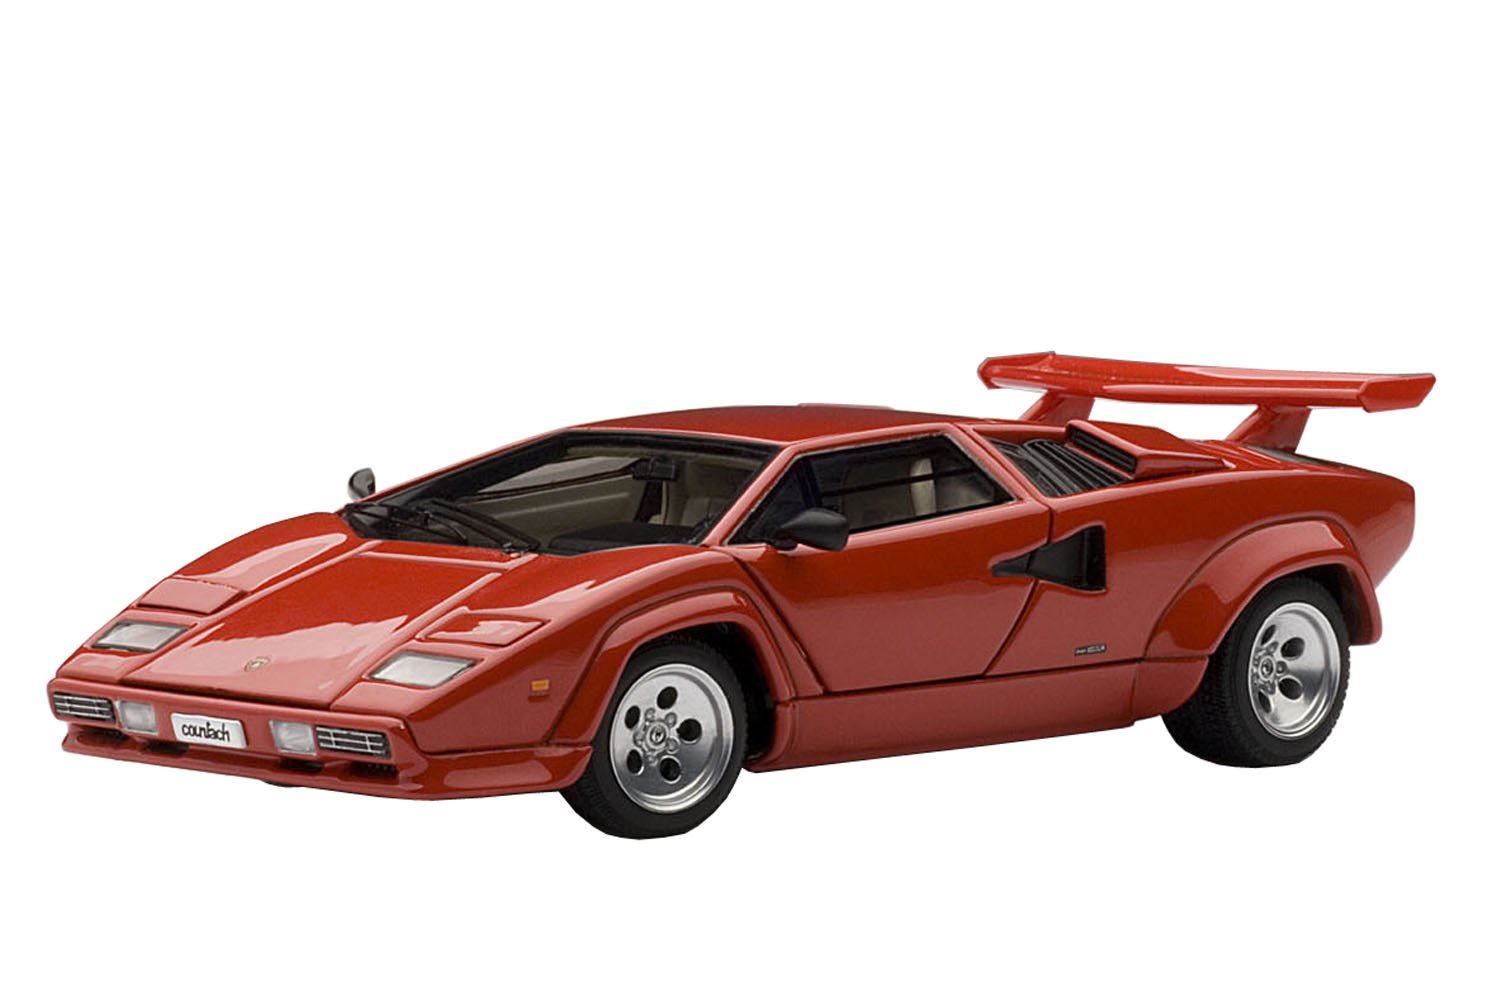 AUTOart 1/43 Lamborghini Countach 5000S (Red) [Toy] (japan import)